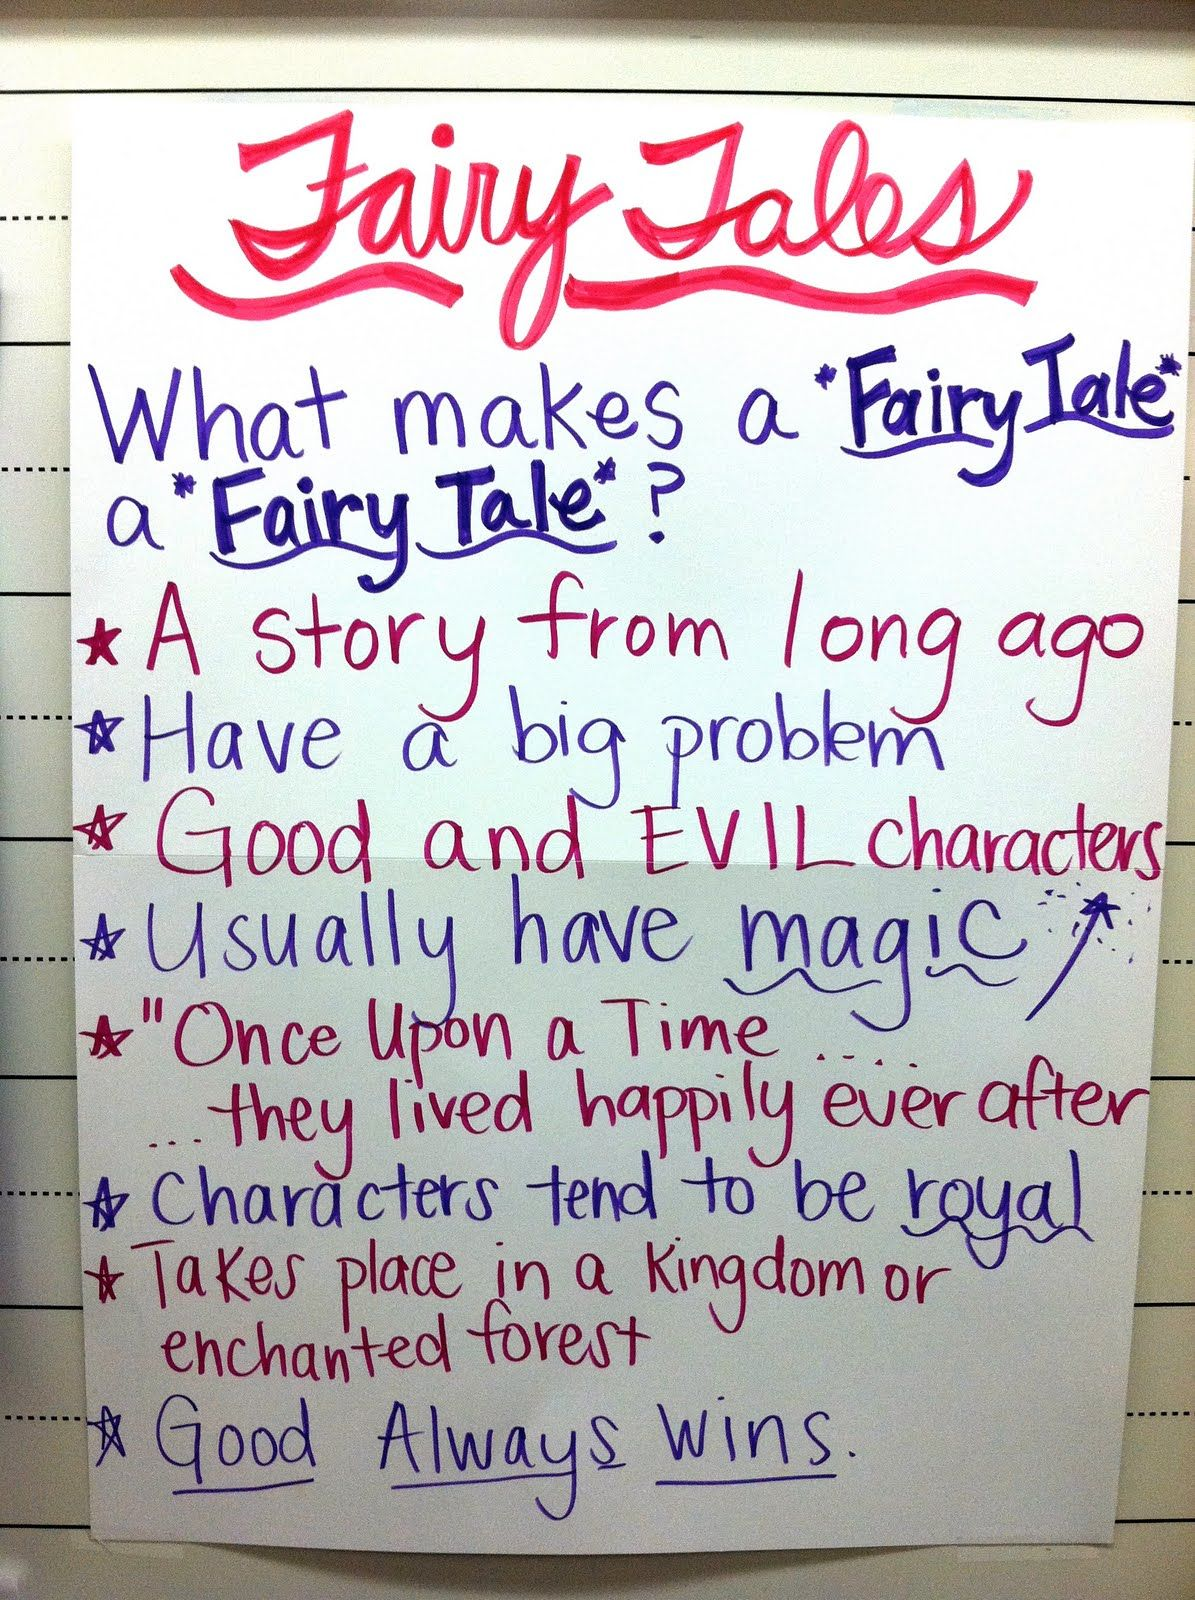 Mrs Tabb First Grade Awesomeness Fairy Tale Photo Post Is Has So May Possibilities For